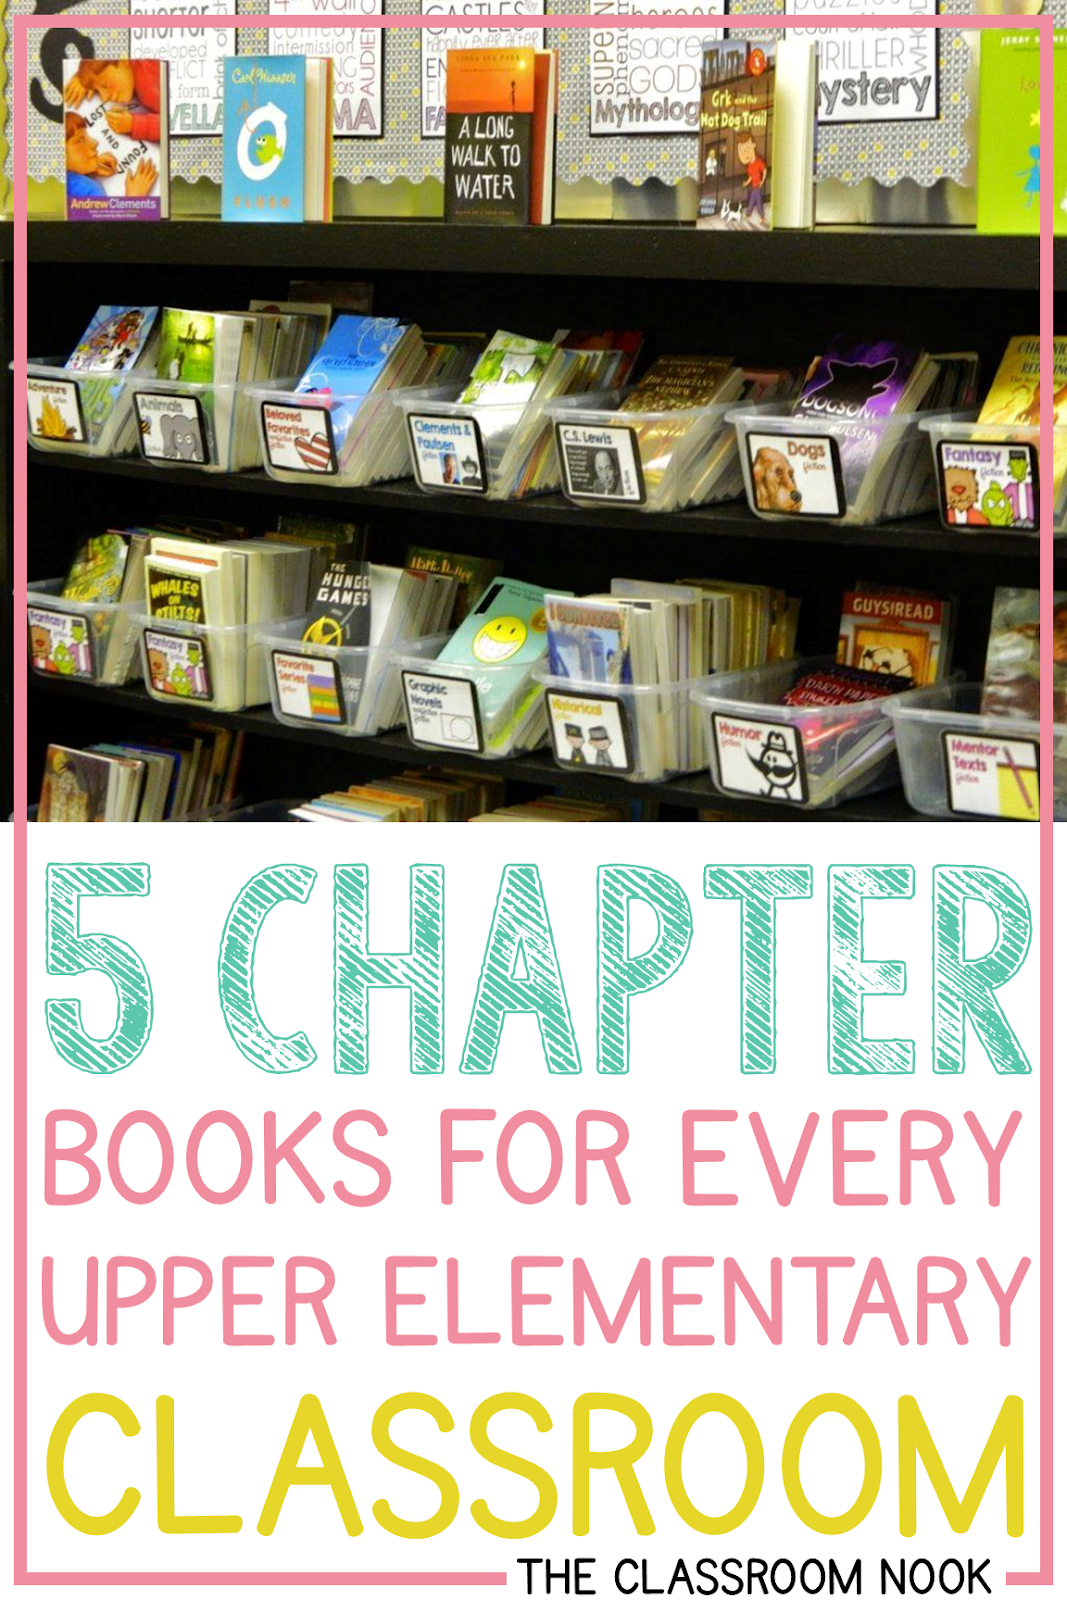 Check out this post with 5 Chapter Books that every upper elementary classroom library should have - these are great for read-aloud books or even to use in your whole-group and small-group reading instruction #upperelementary #teachingreading #thirdgrade #fourthgrade #fifthgrade #novels #guidedreading #readaloud